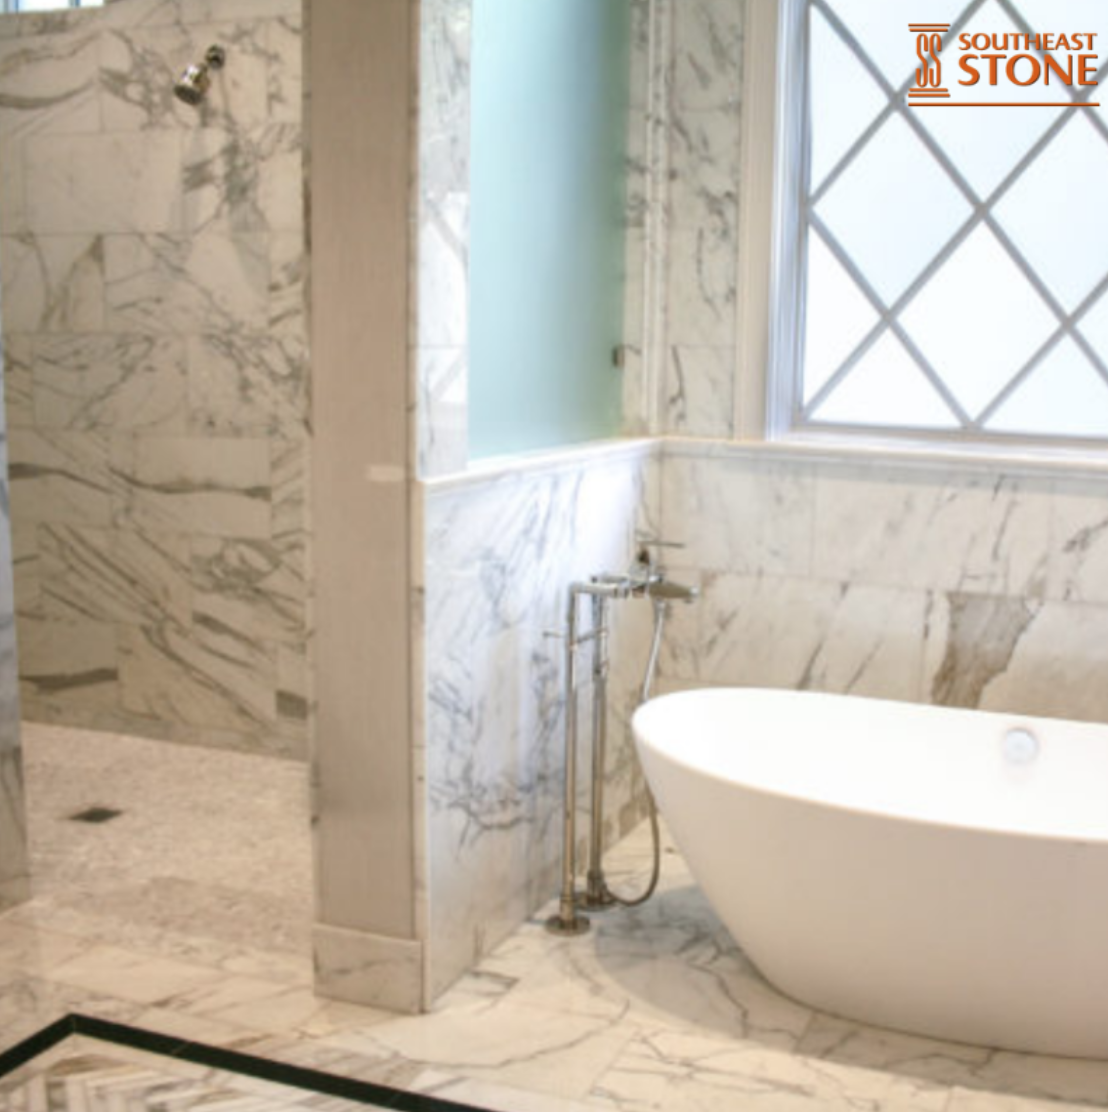 These homeowners selected Calcutta Extra, Marble Tile to fit